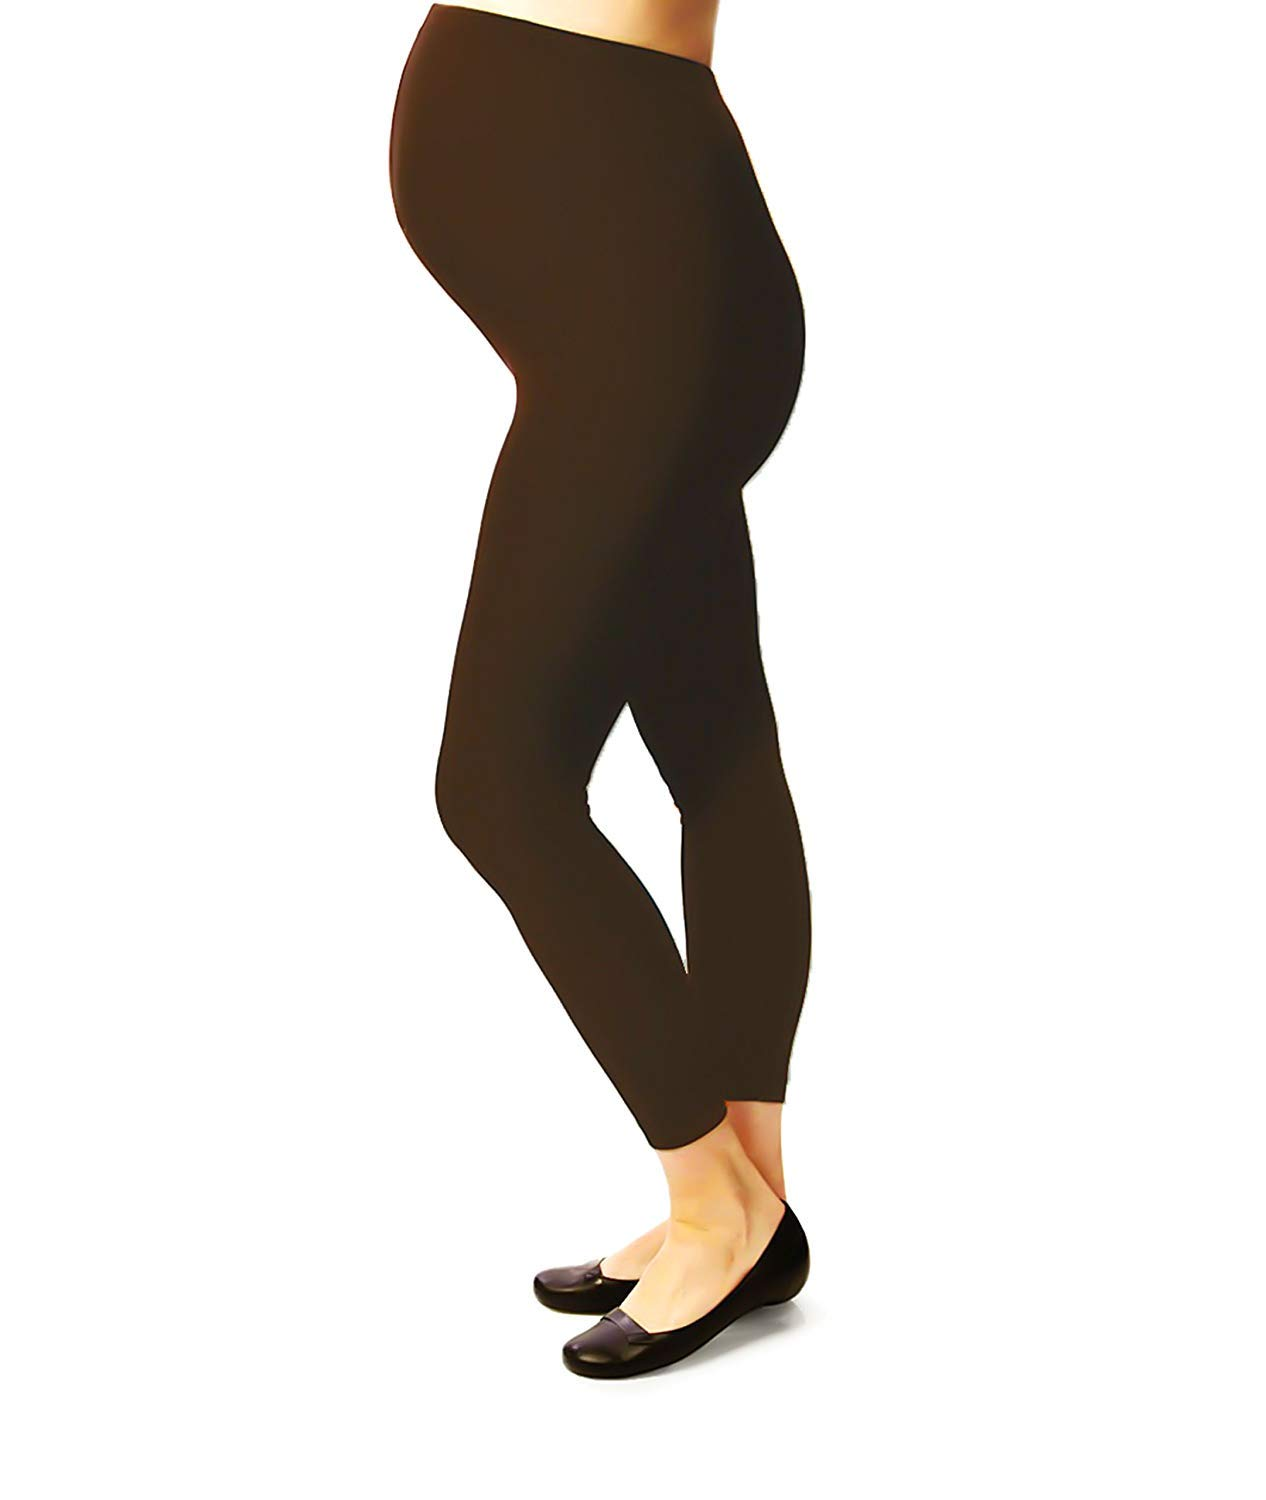 Terramed Maternity Leggings Compression Stockings Women 20-30 mmHg - Graduated Compression Stockings Women Pregnancy | Microfiber Footless Maternity Compression Leggings Over The Belly